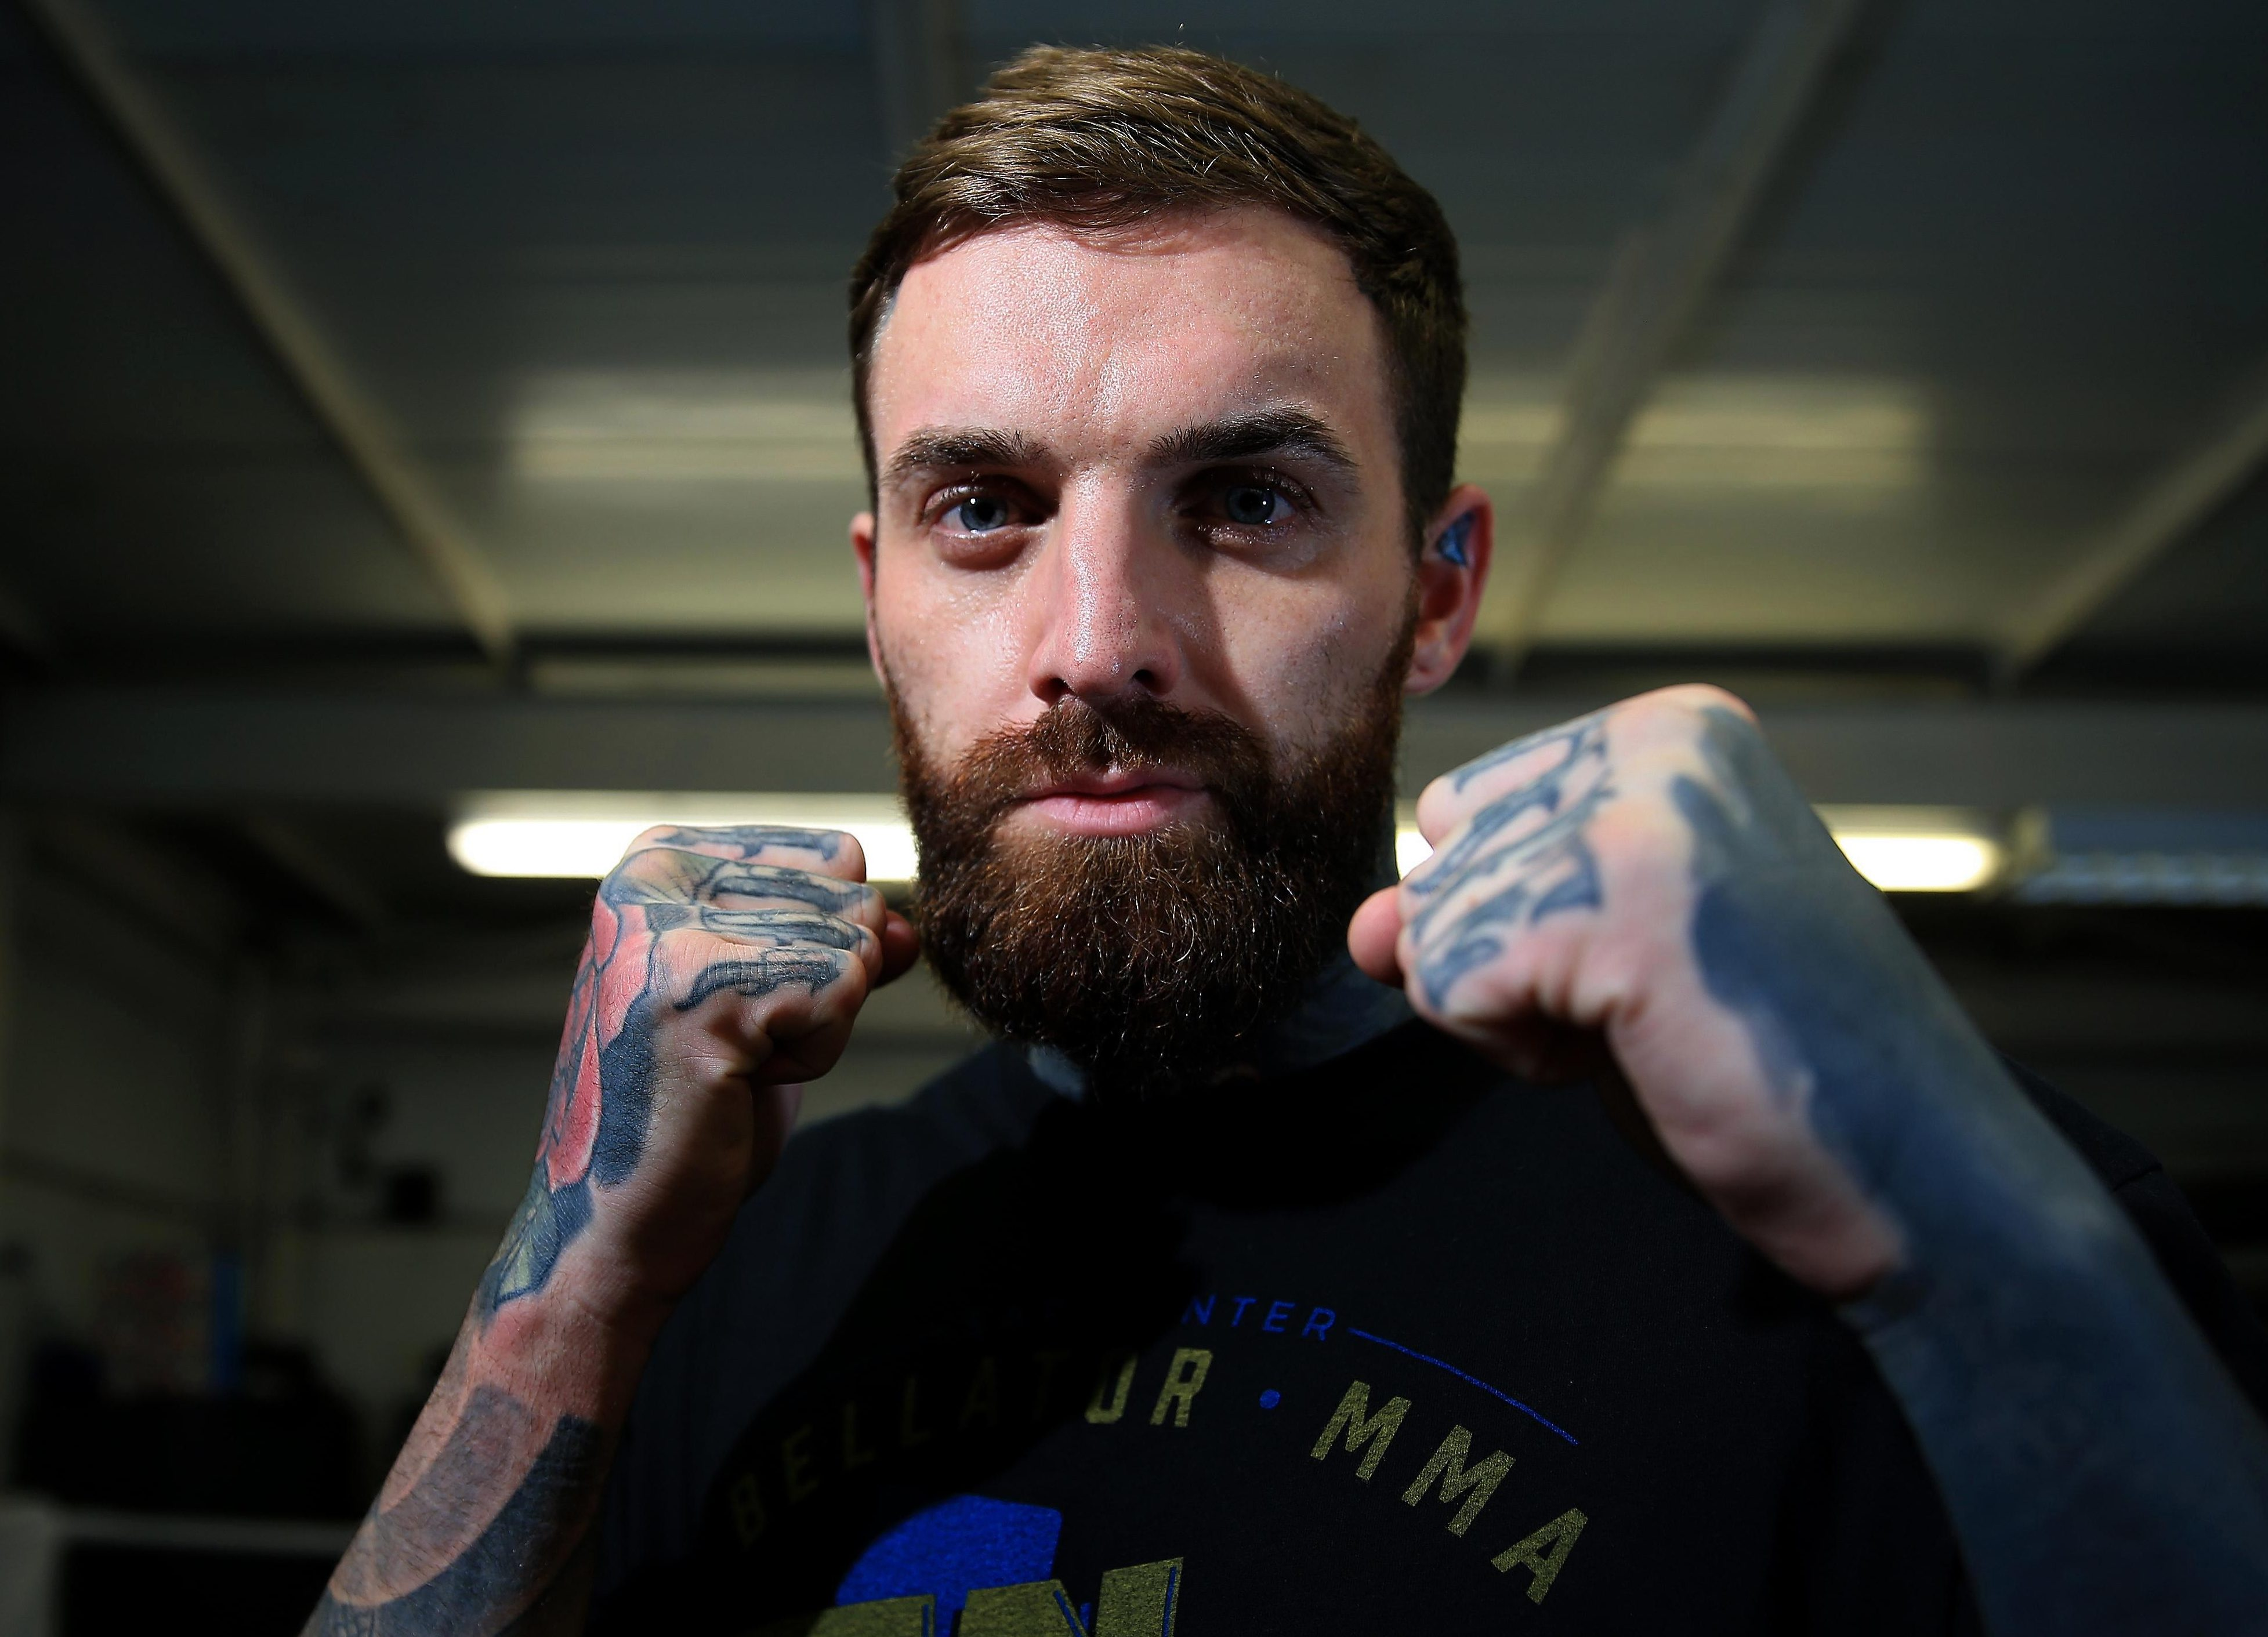 He is 4-0 in his MMA career after 18 months